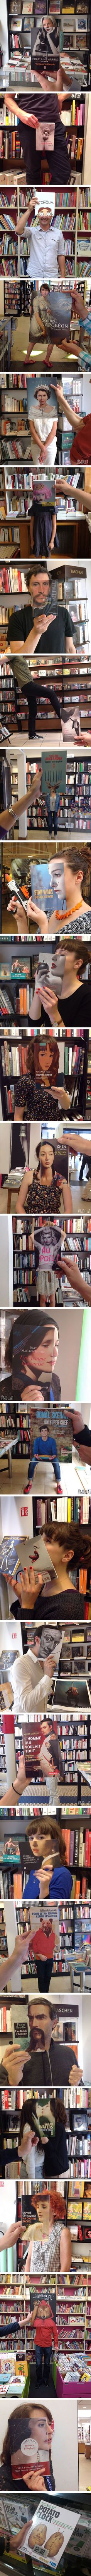 When People Match Their Books A Little Too Well